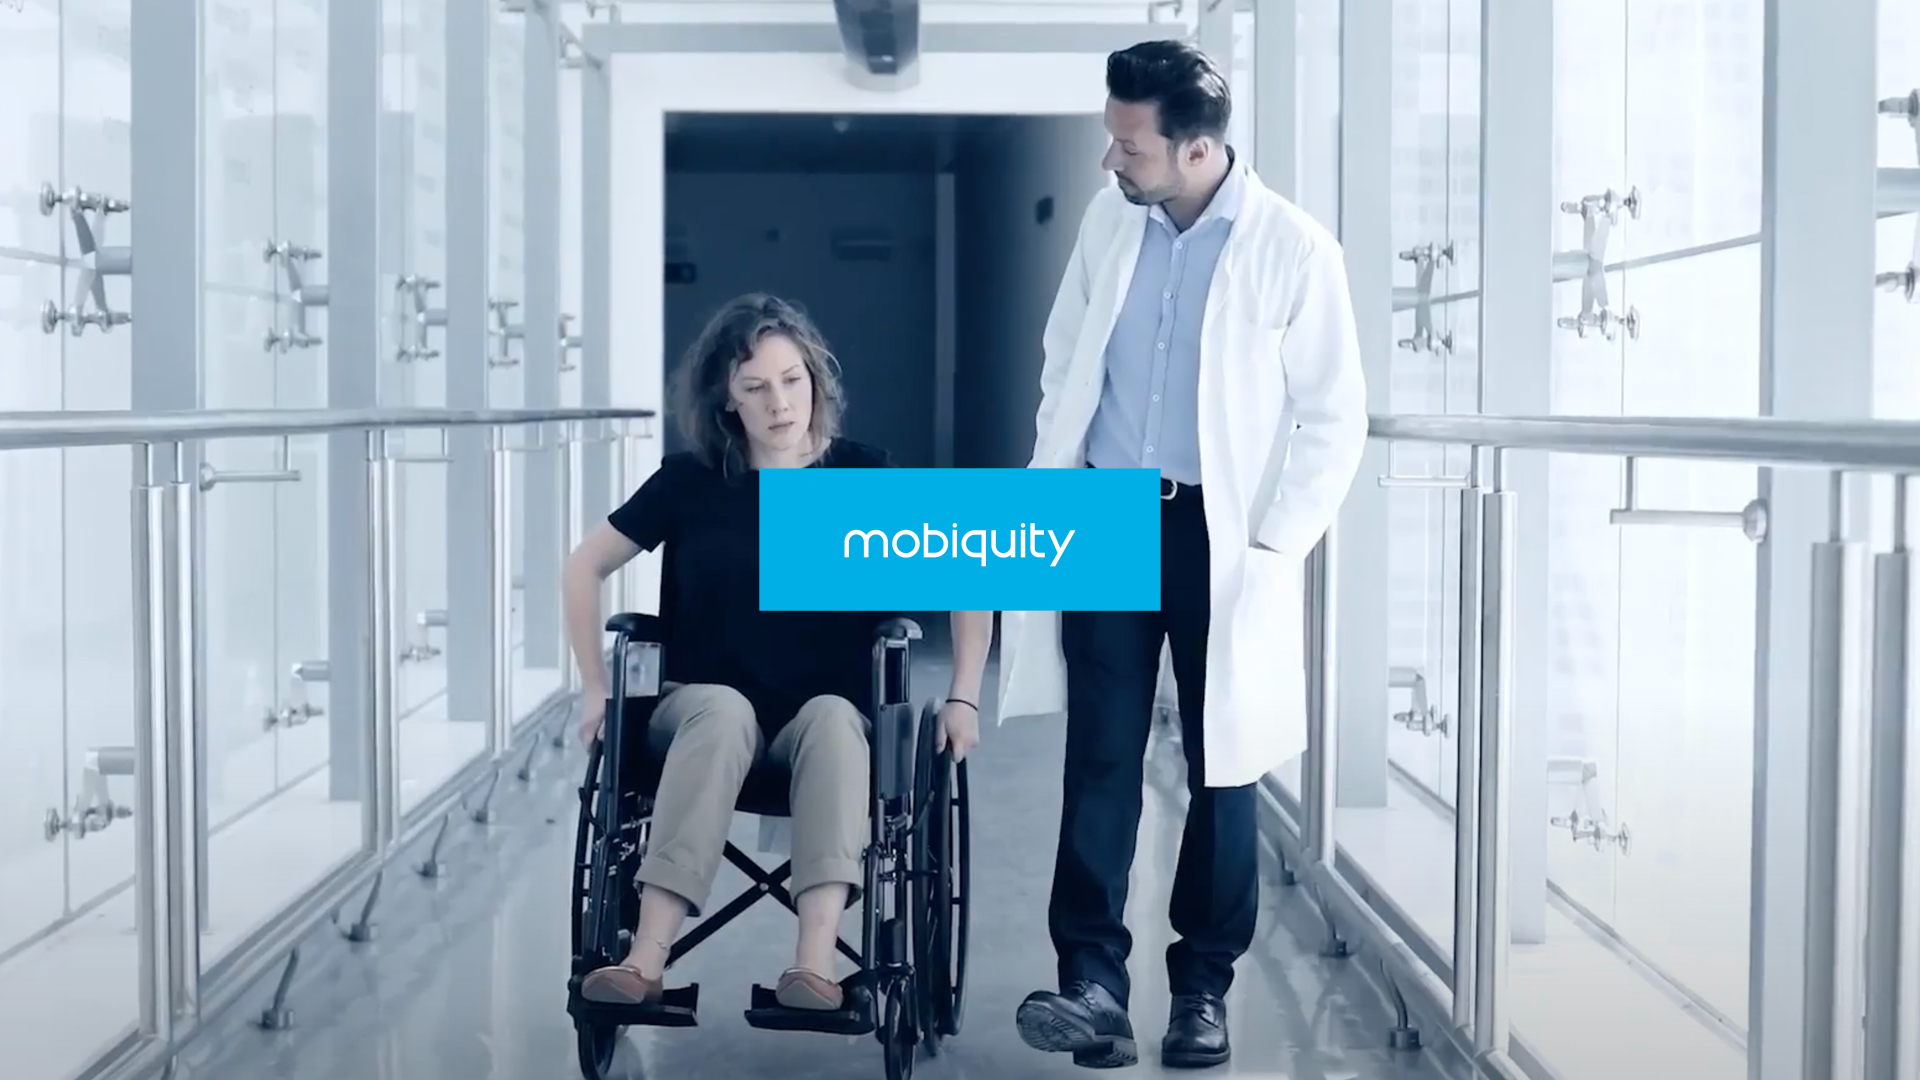 Mobiquity_In_Healthcare_Subtitled